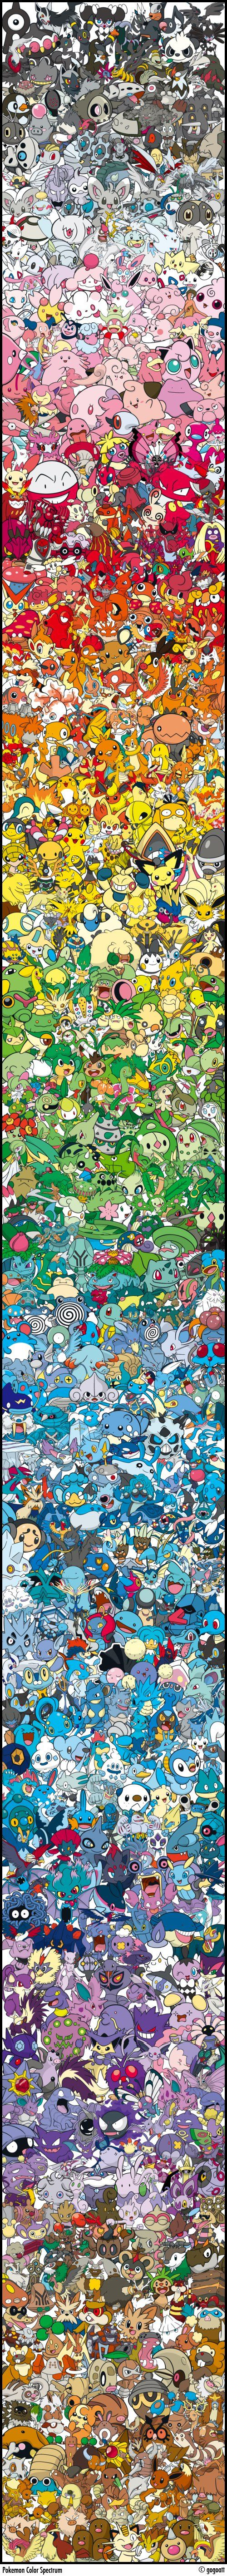 Los principales Pokemon y su escala cromática #videogames #nintendo Via #Pokemon Arranged by #Color